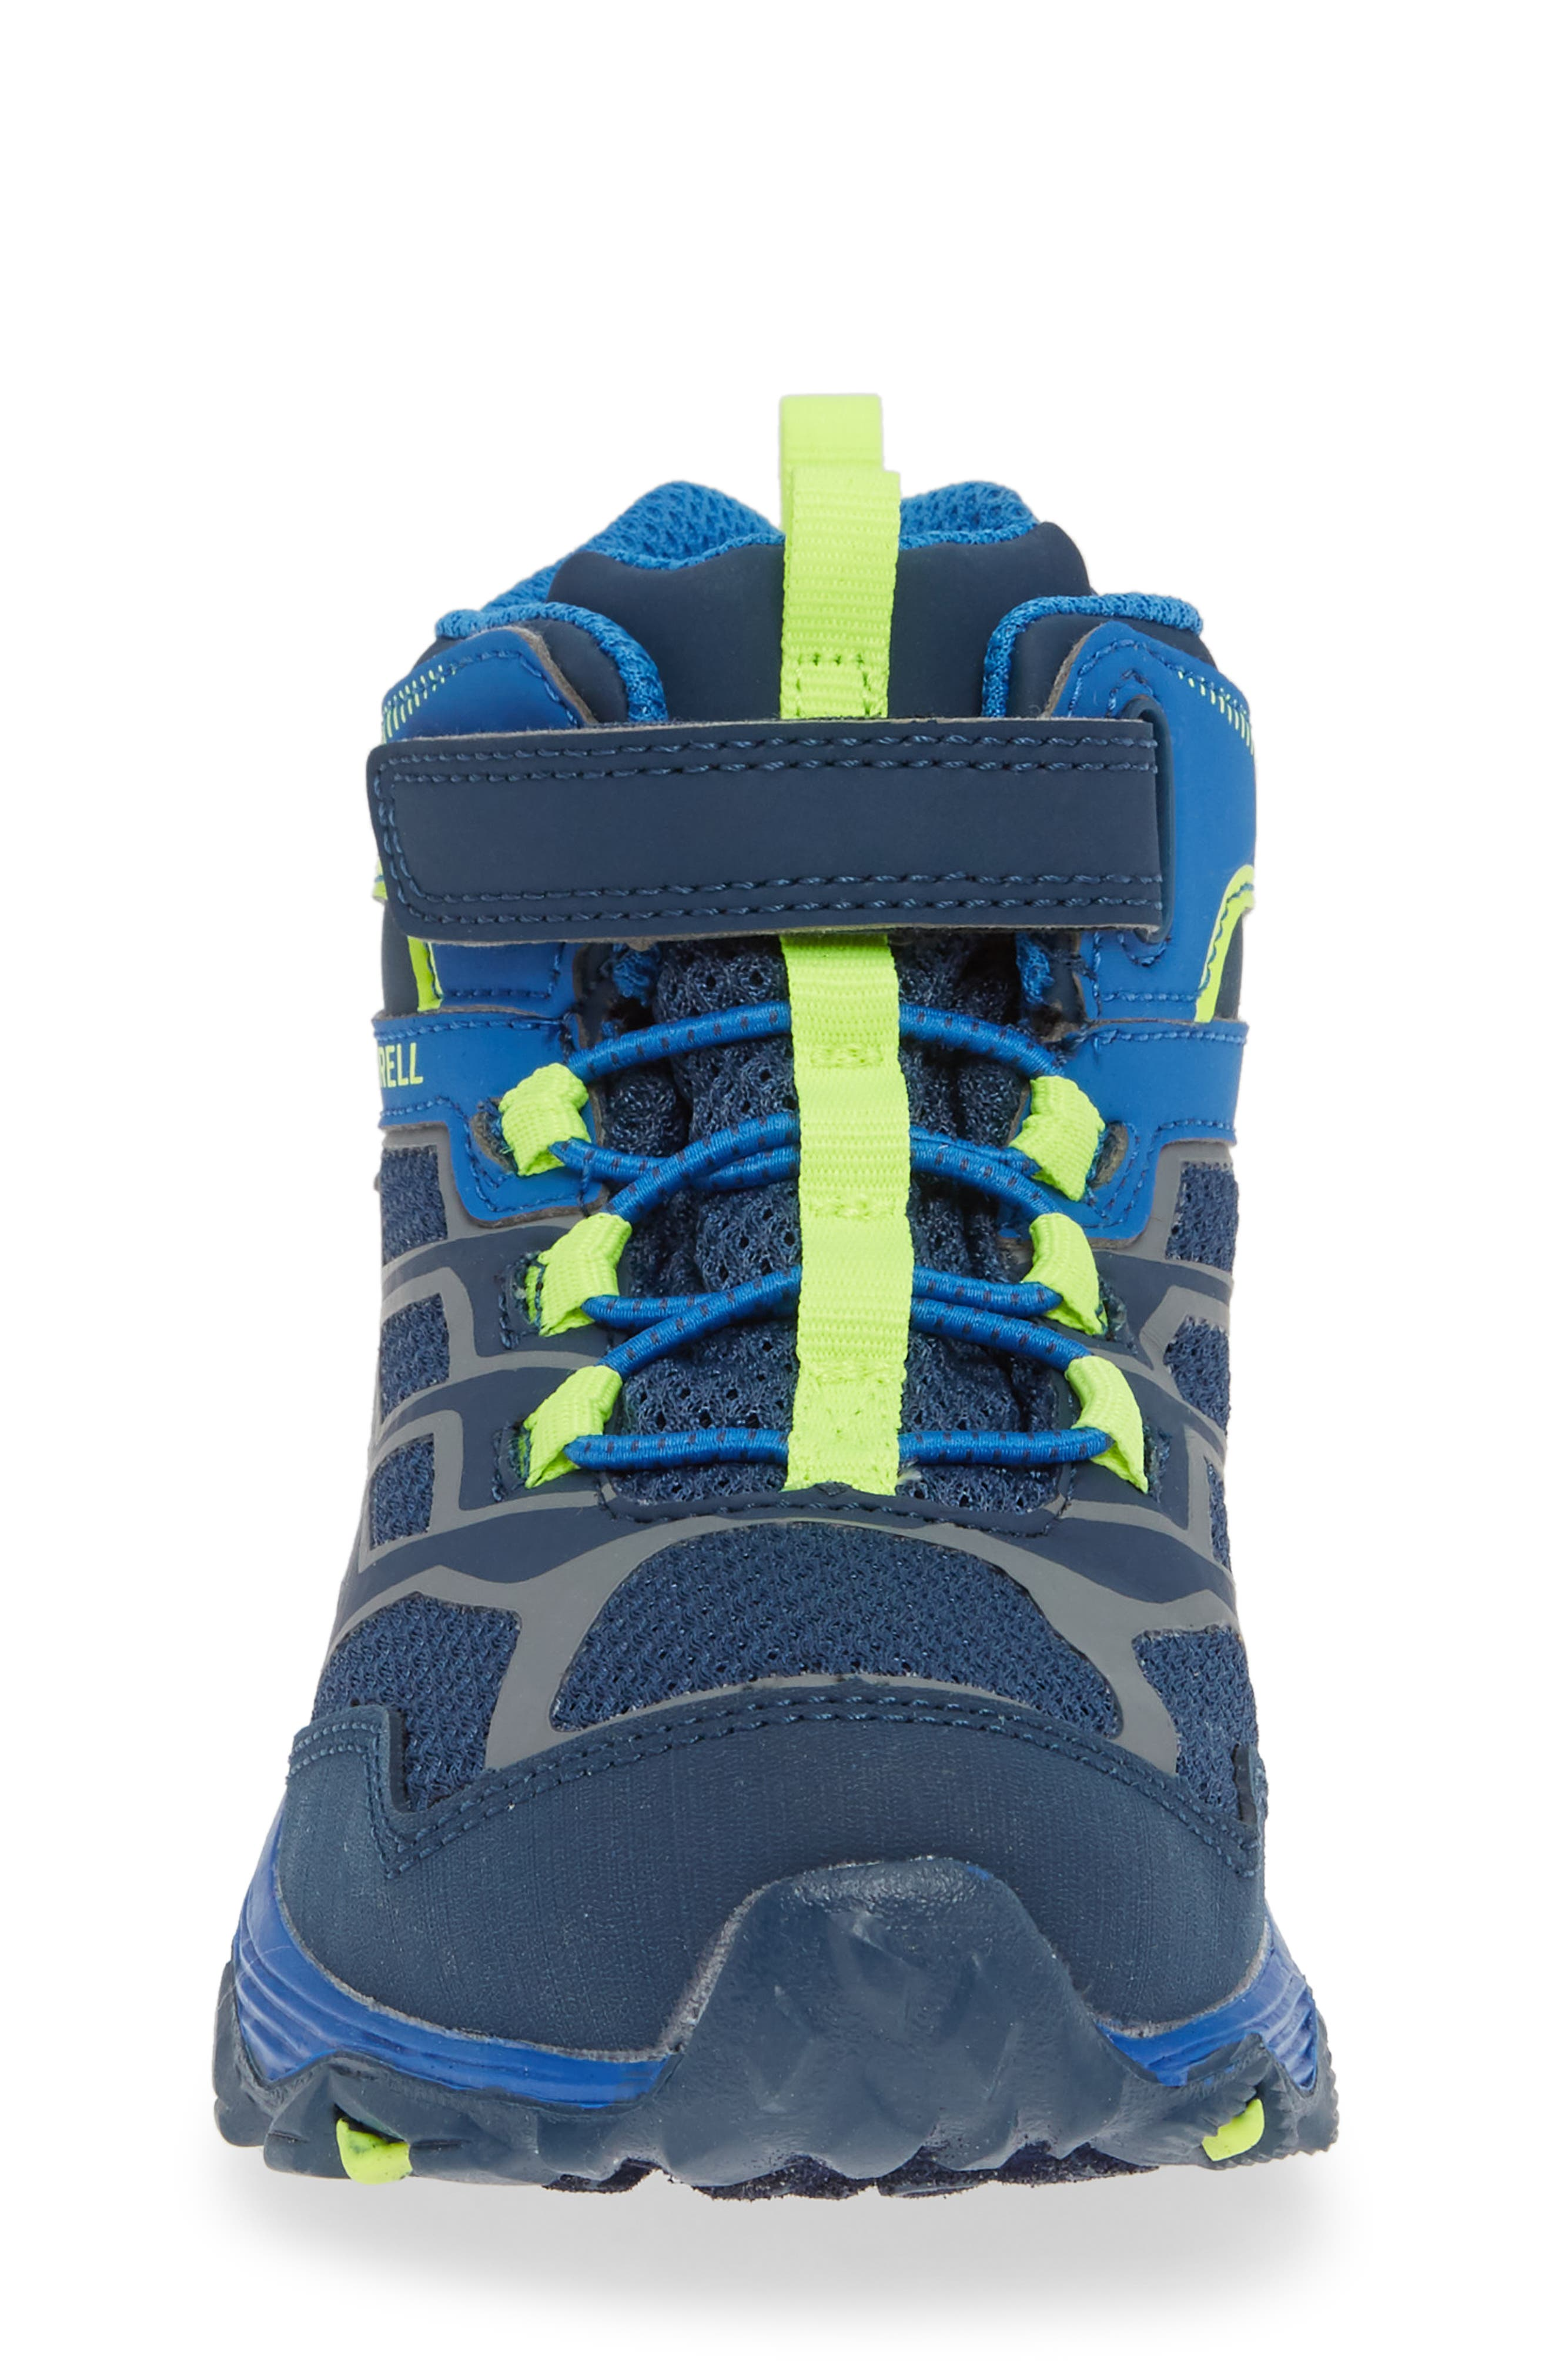 Moab FST Mid Top Waterproof Sneaker Boot,                             Alternate thumbnail 4, color,                             NAVY/ COBALT